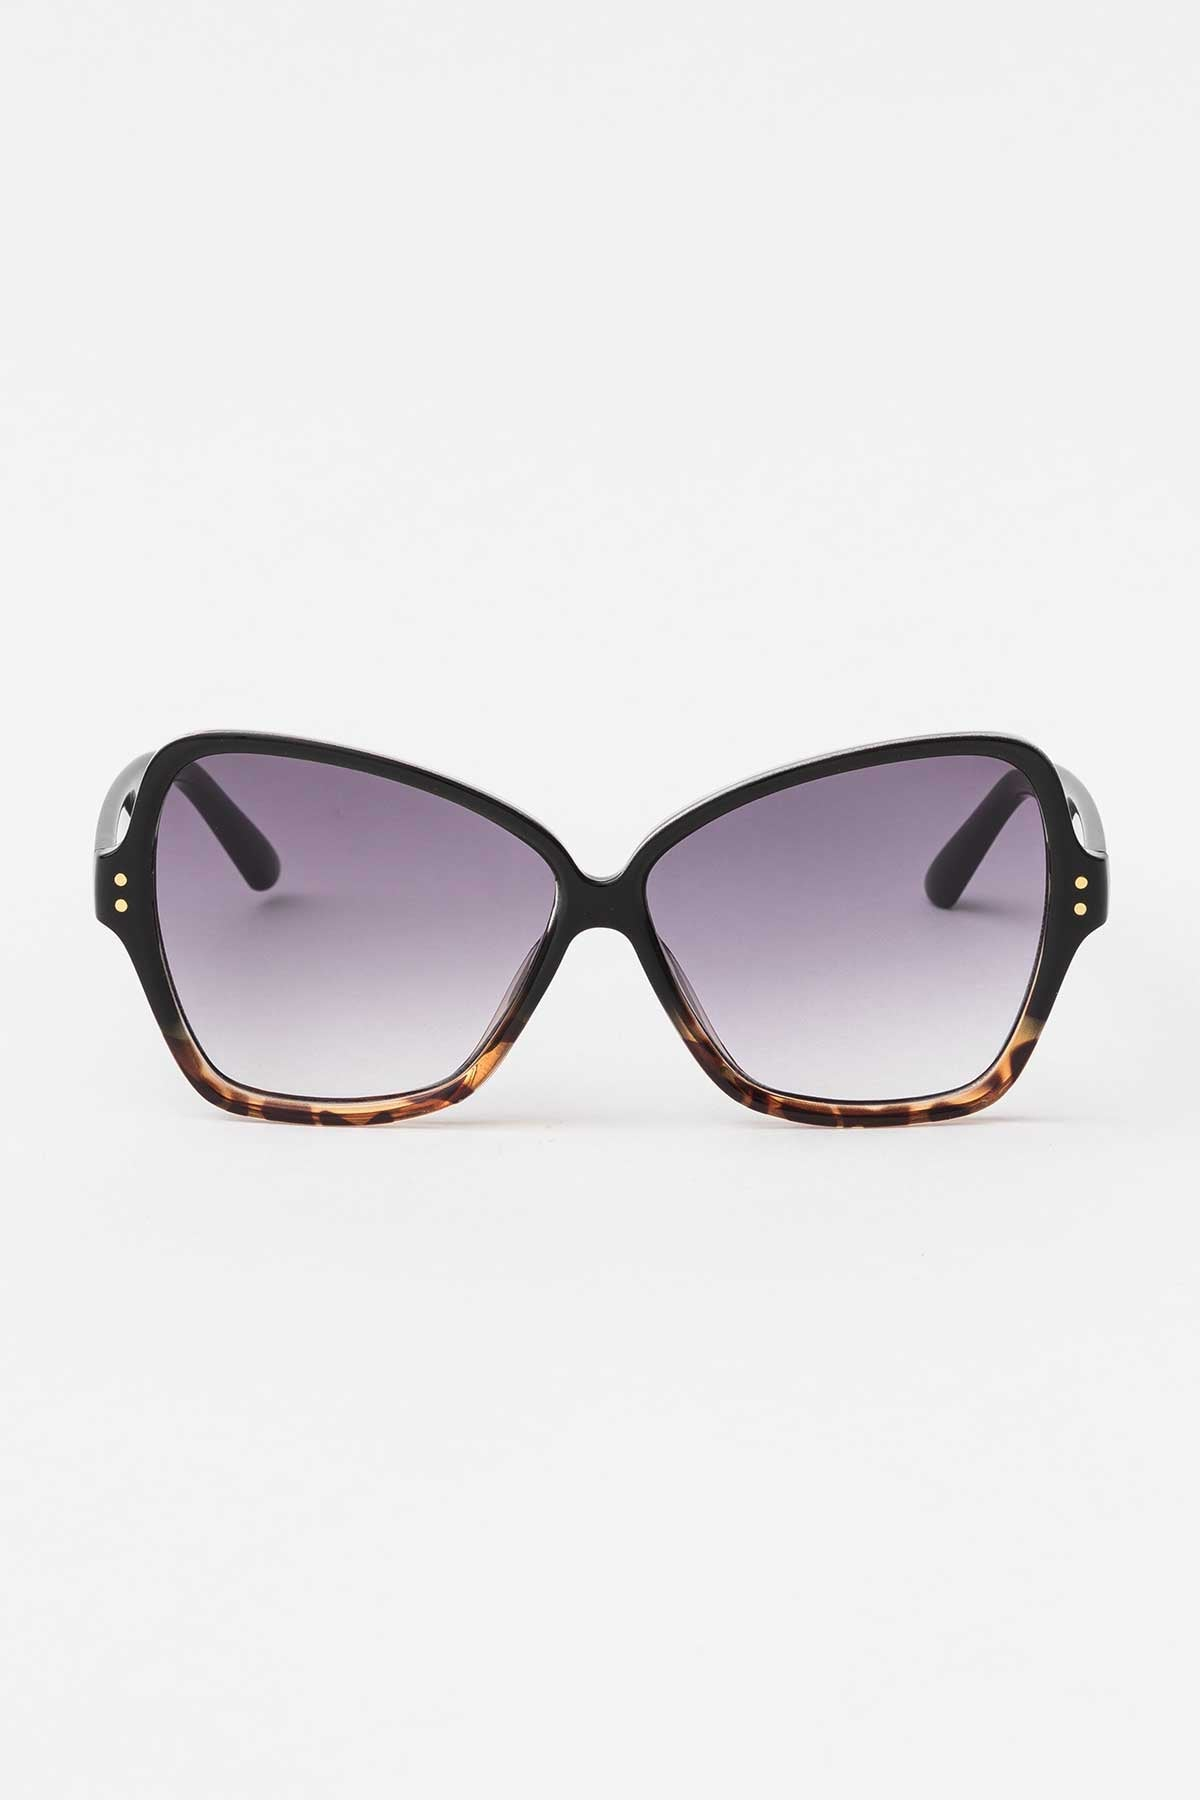 Piper Black Tortoiseshell Sunglasses